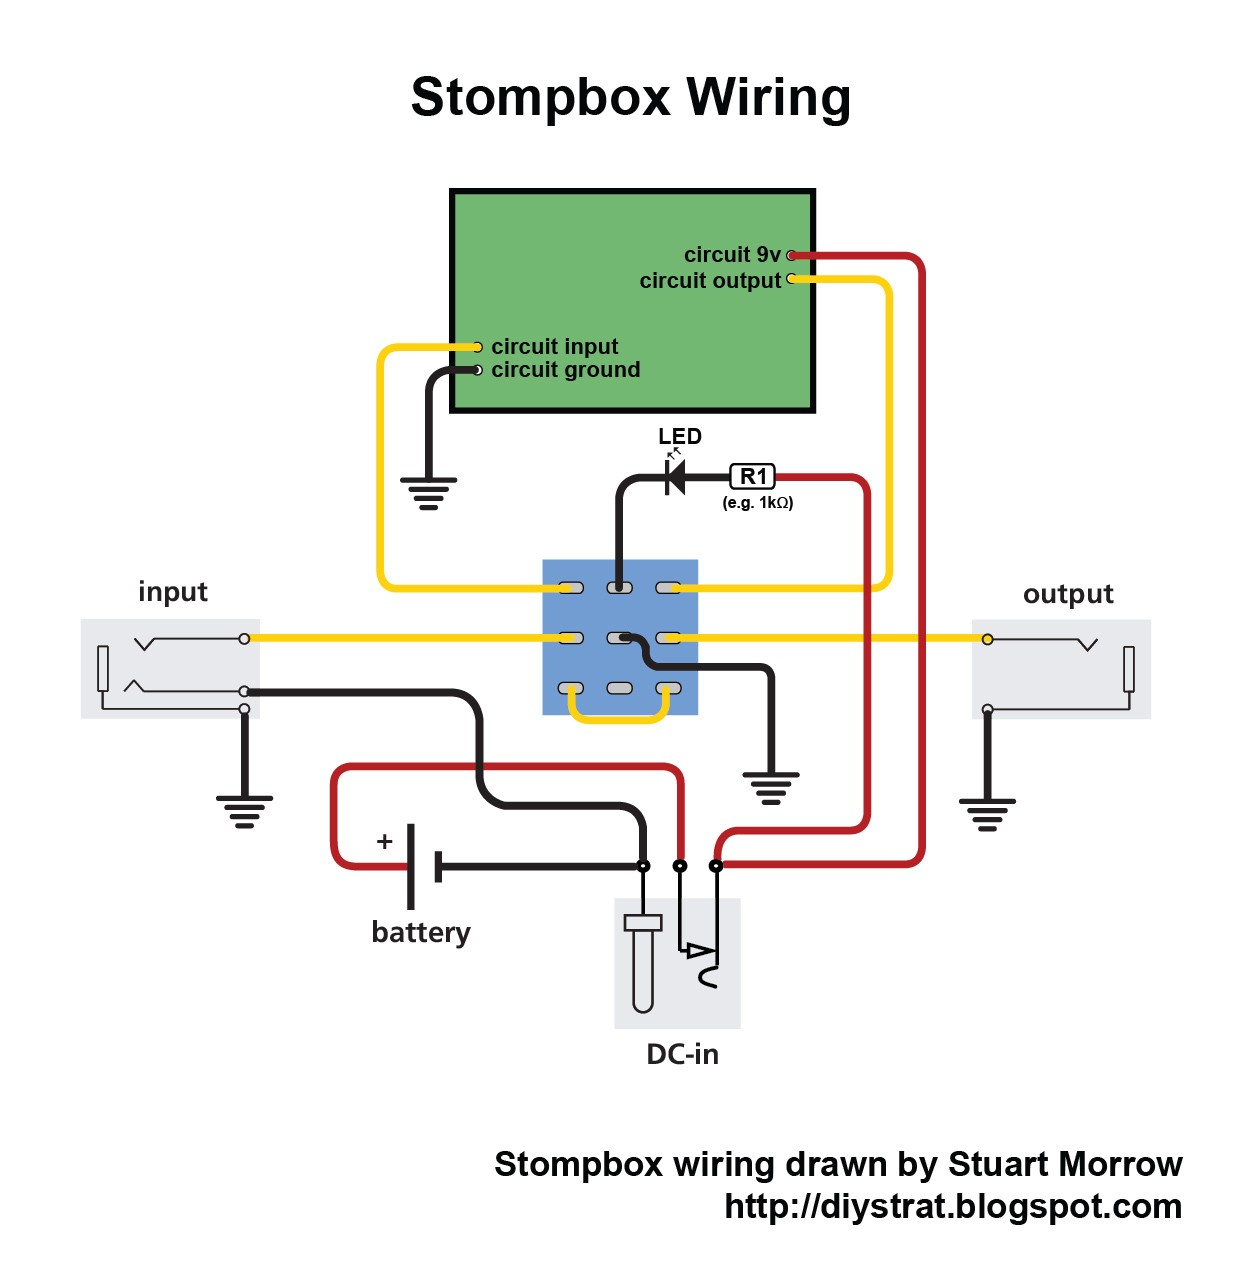 Guitar input jack wiring diagram wiring diagram image how to wire up a stomp box effects pedal diy strat and other guitar effects schematics swarovskicordoba Image collections